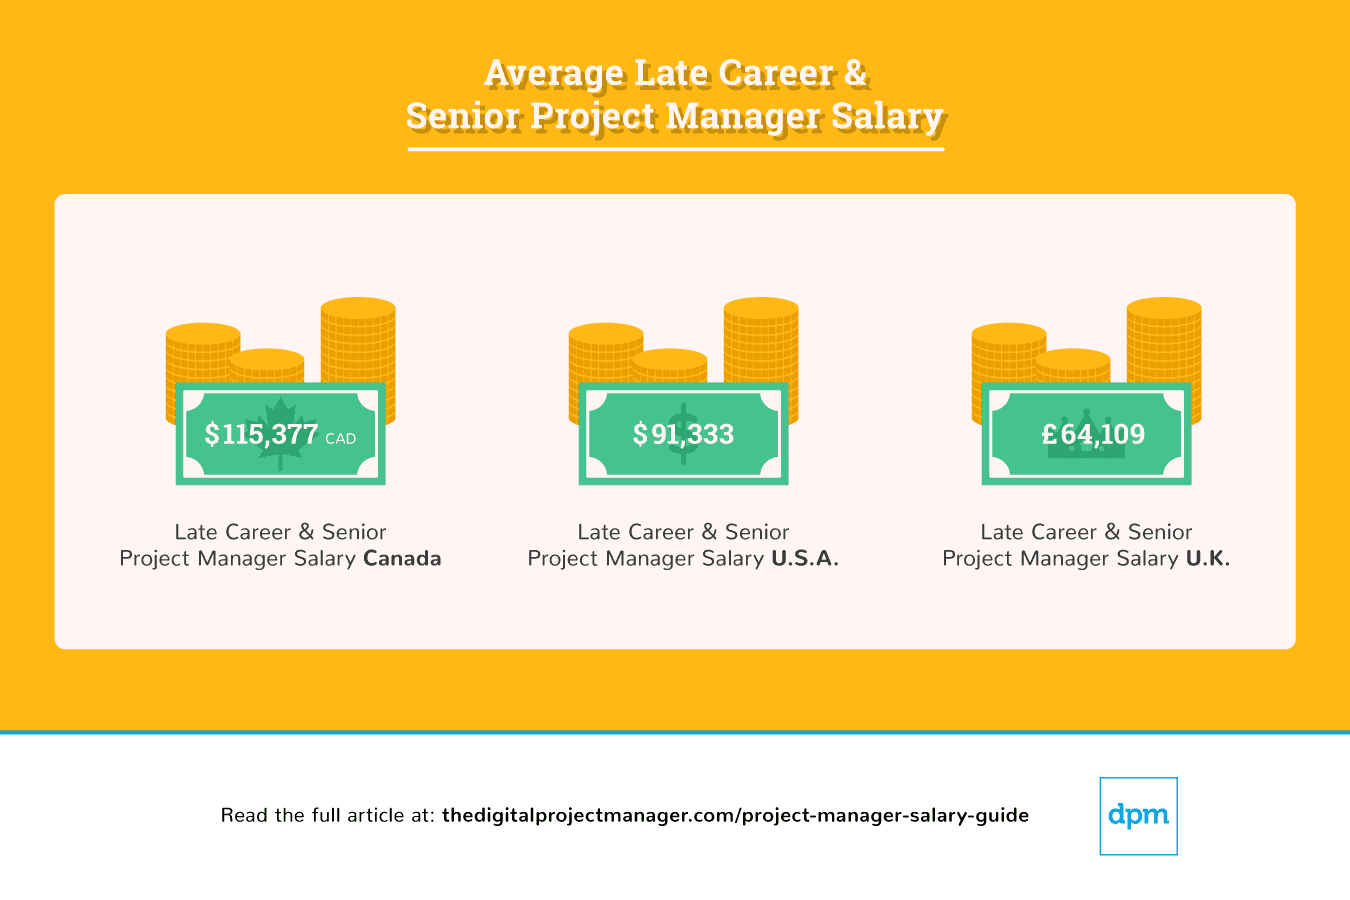 average-late-career-and-senior-project-manager-salary